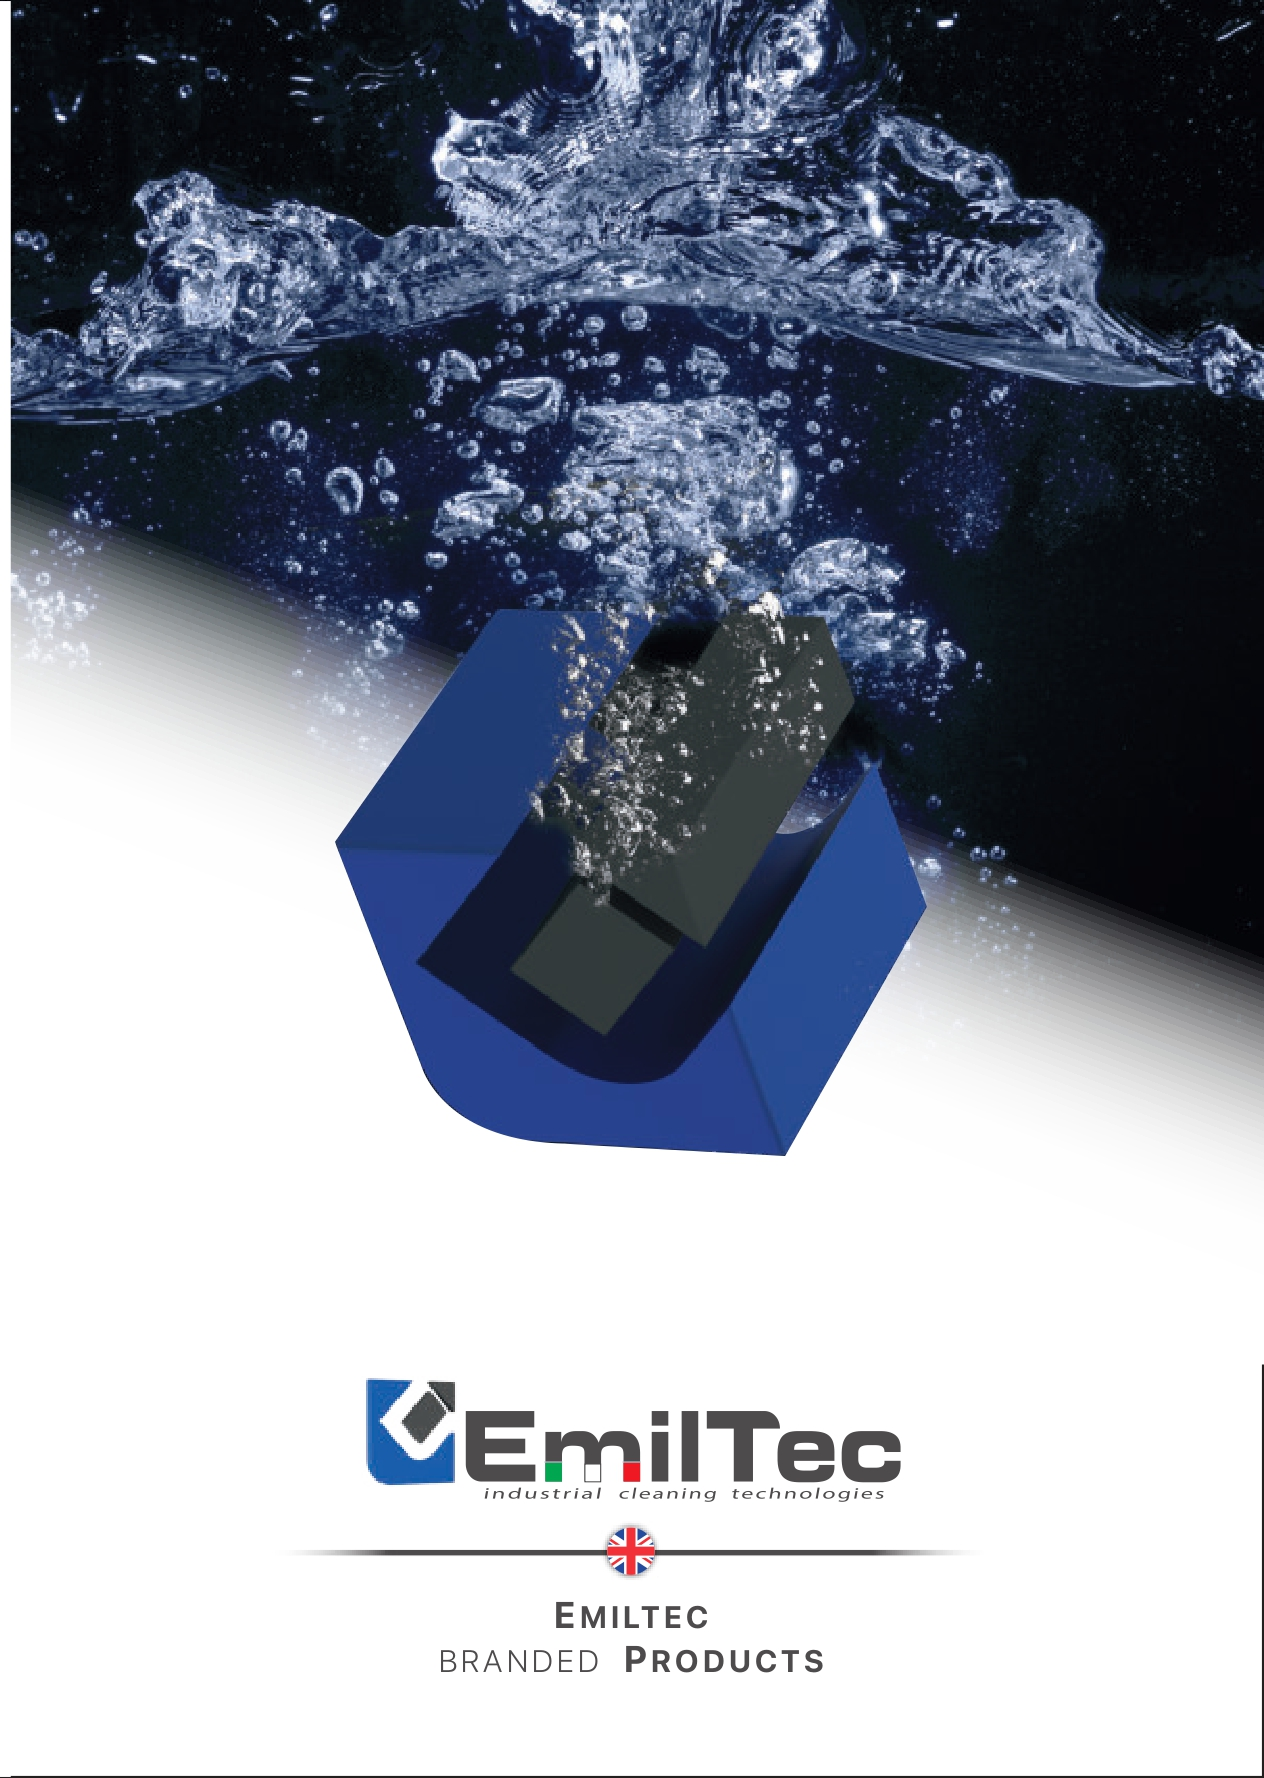 EMILTEC BRANDED PRODUCTS